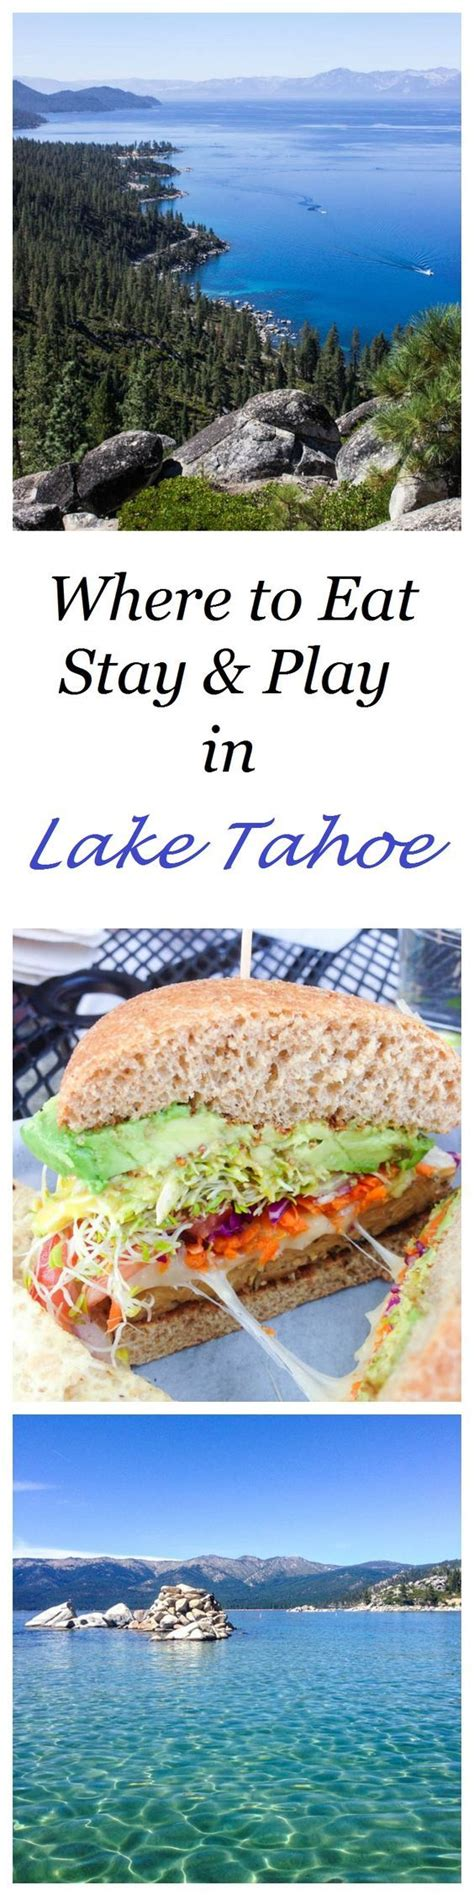 The landing at prizer point marina & resort is casual dining in a floating restaurant on the waters of lake barkley. Where to Eat, Stay & Play in Lake Tahoe | Lake tahoe ...